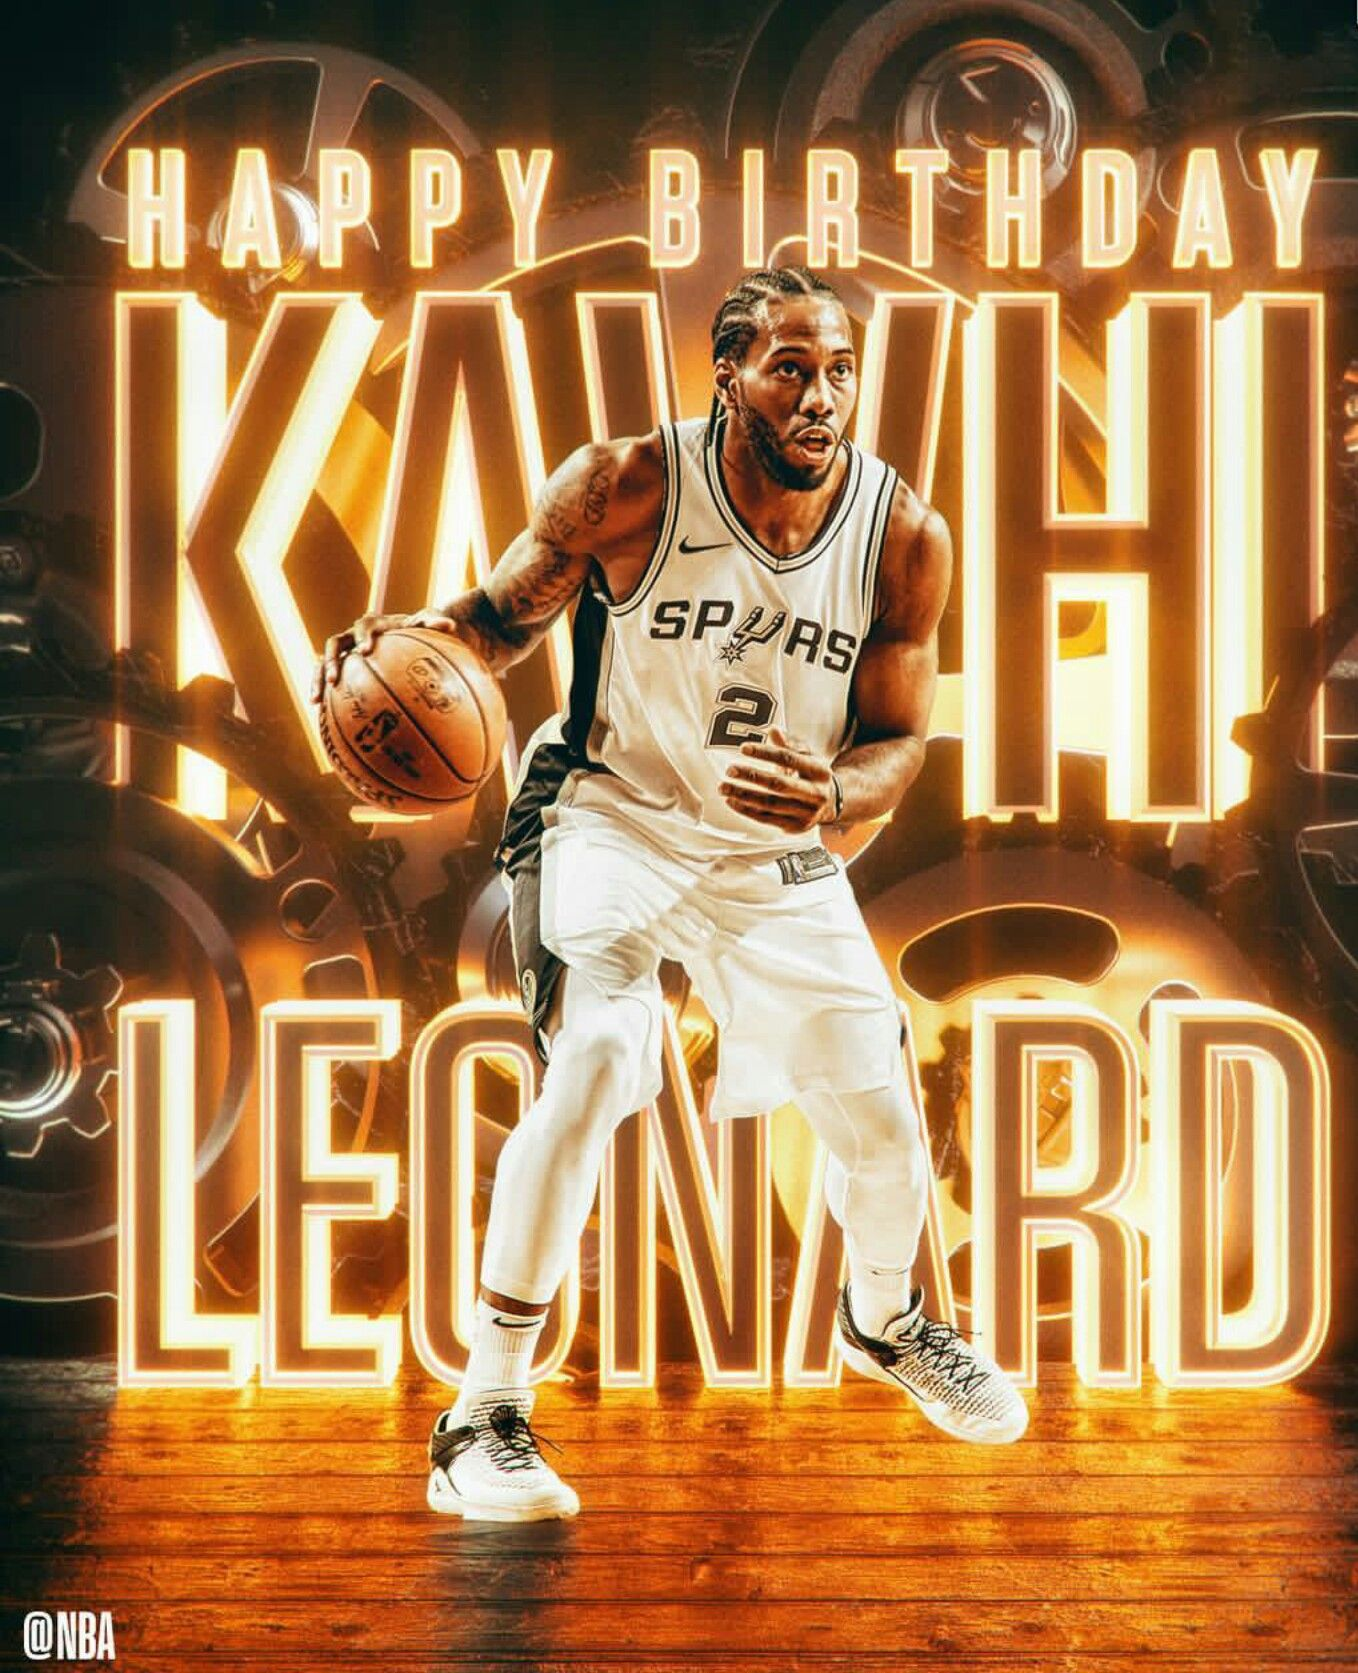 Pin by enticing on NBA IT'S FAN.... U KNO Happy 27th